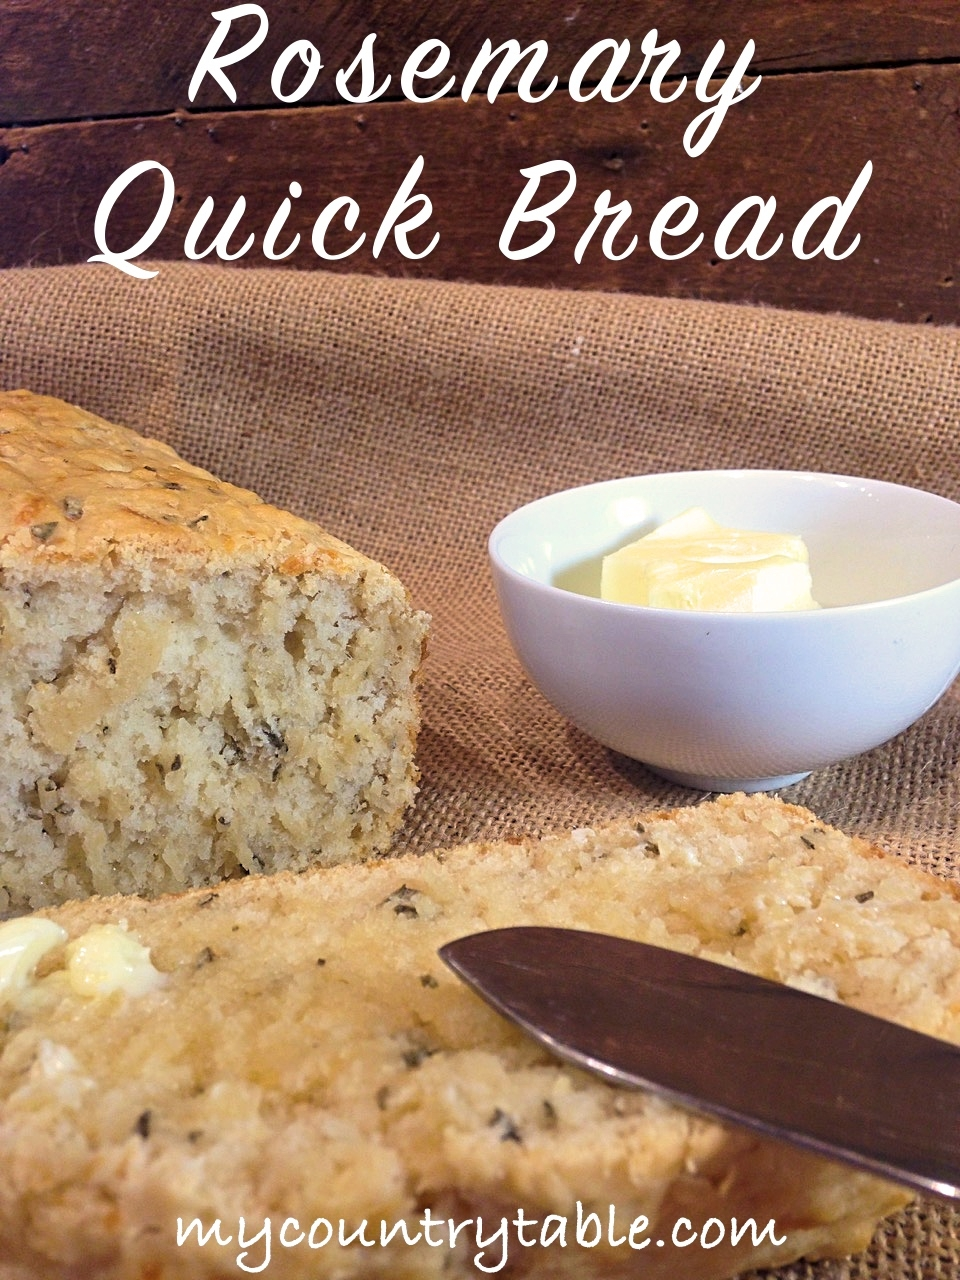 Rosemary Quick Bread